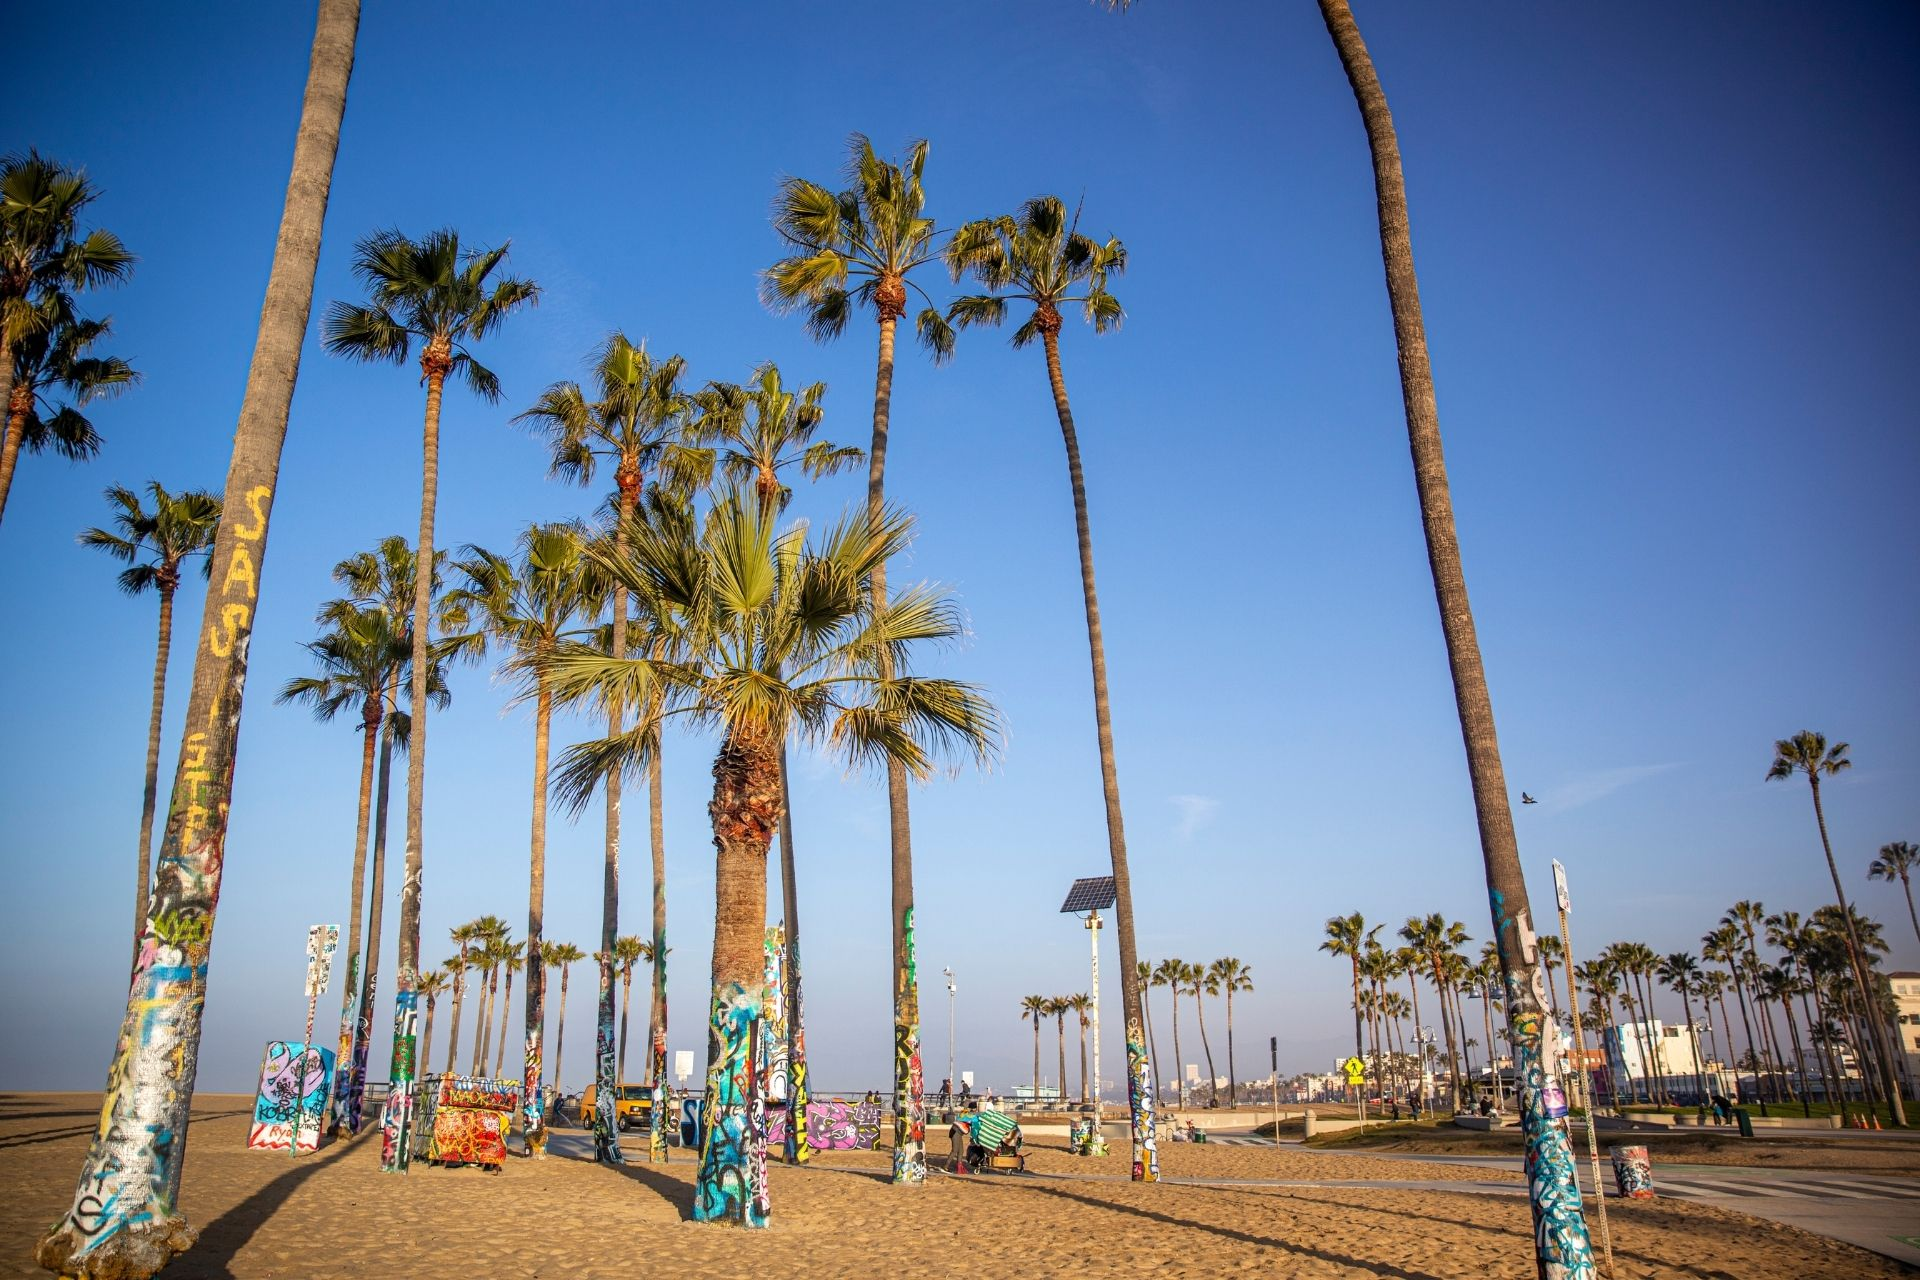 Where to stay in Venice Beach